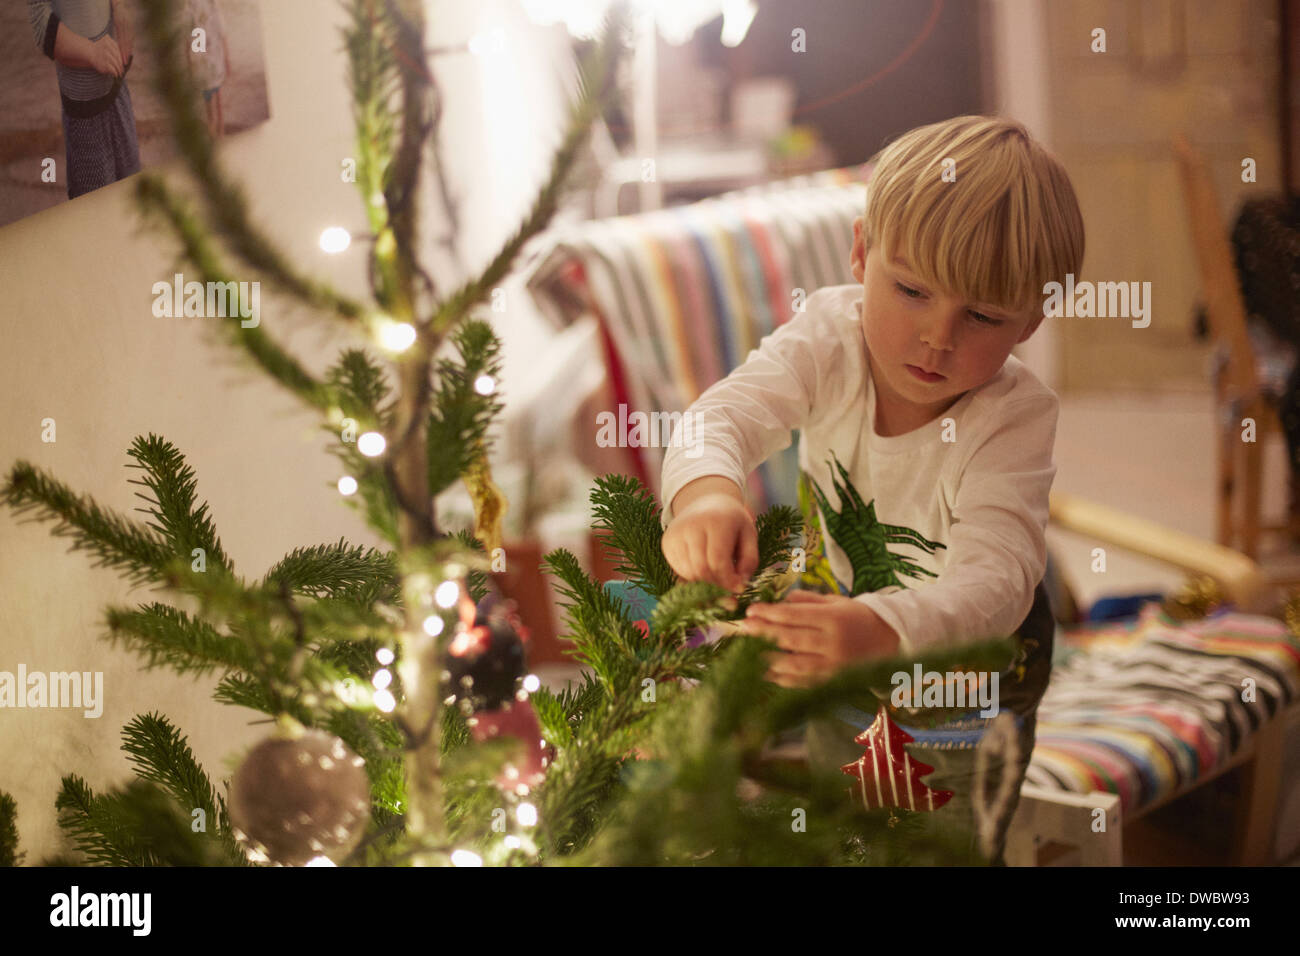 Young boy decorating Christmas Tree à Photo Stock